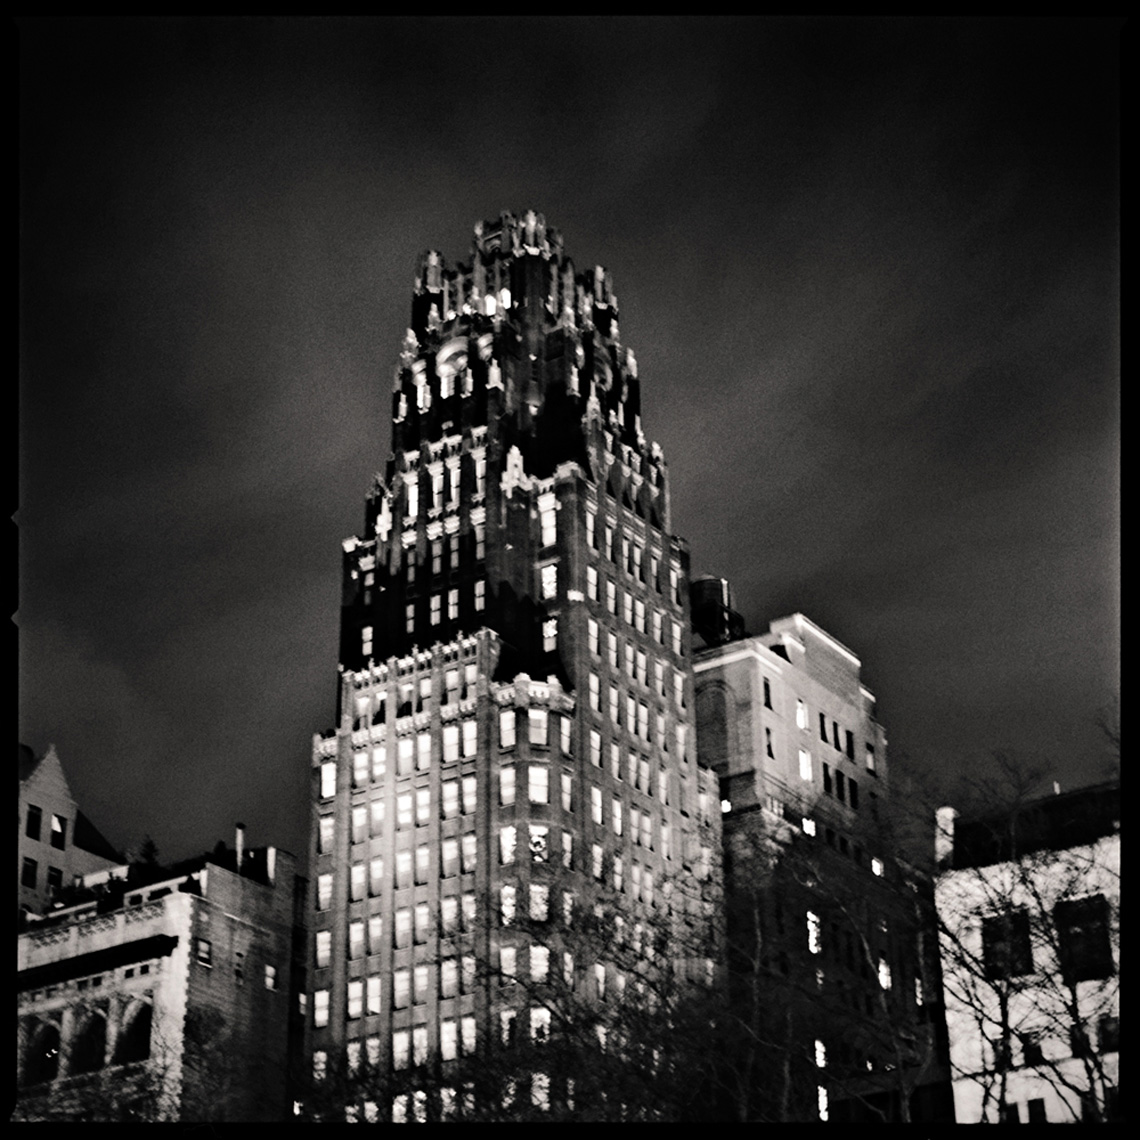 Sean Perry Photographs • The Bryant, from the series Gotham